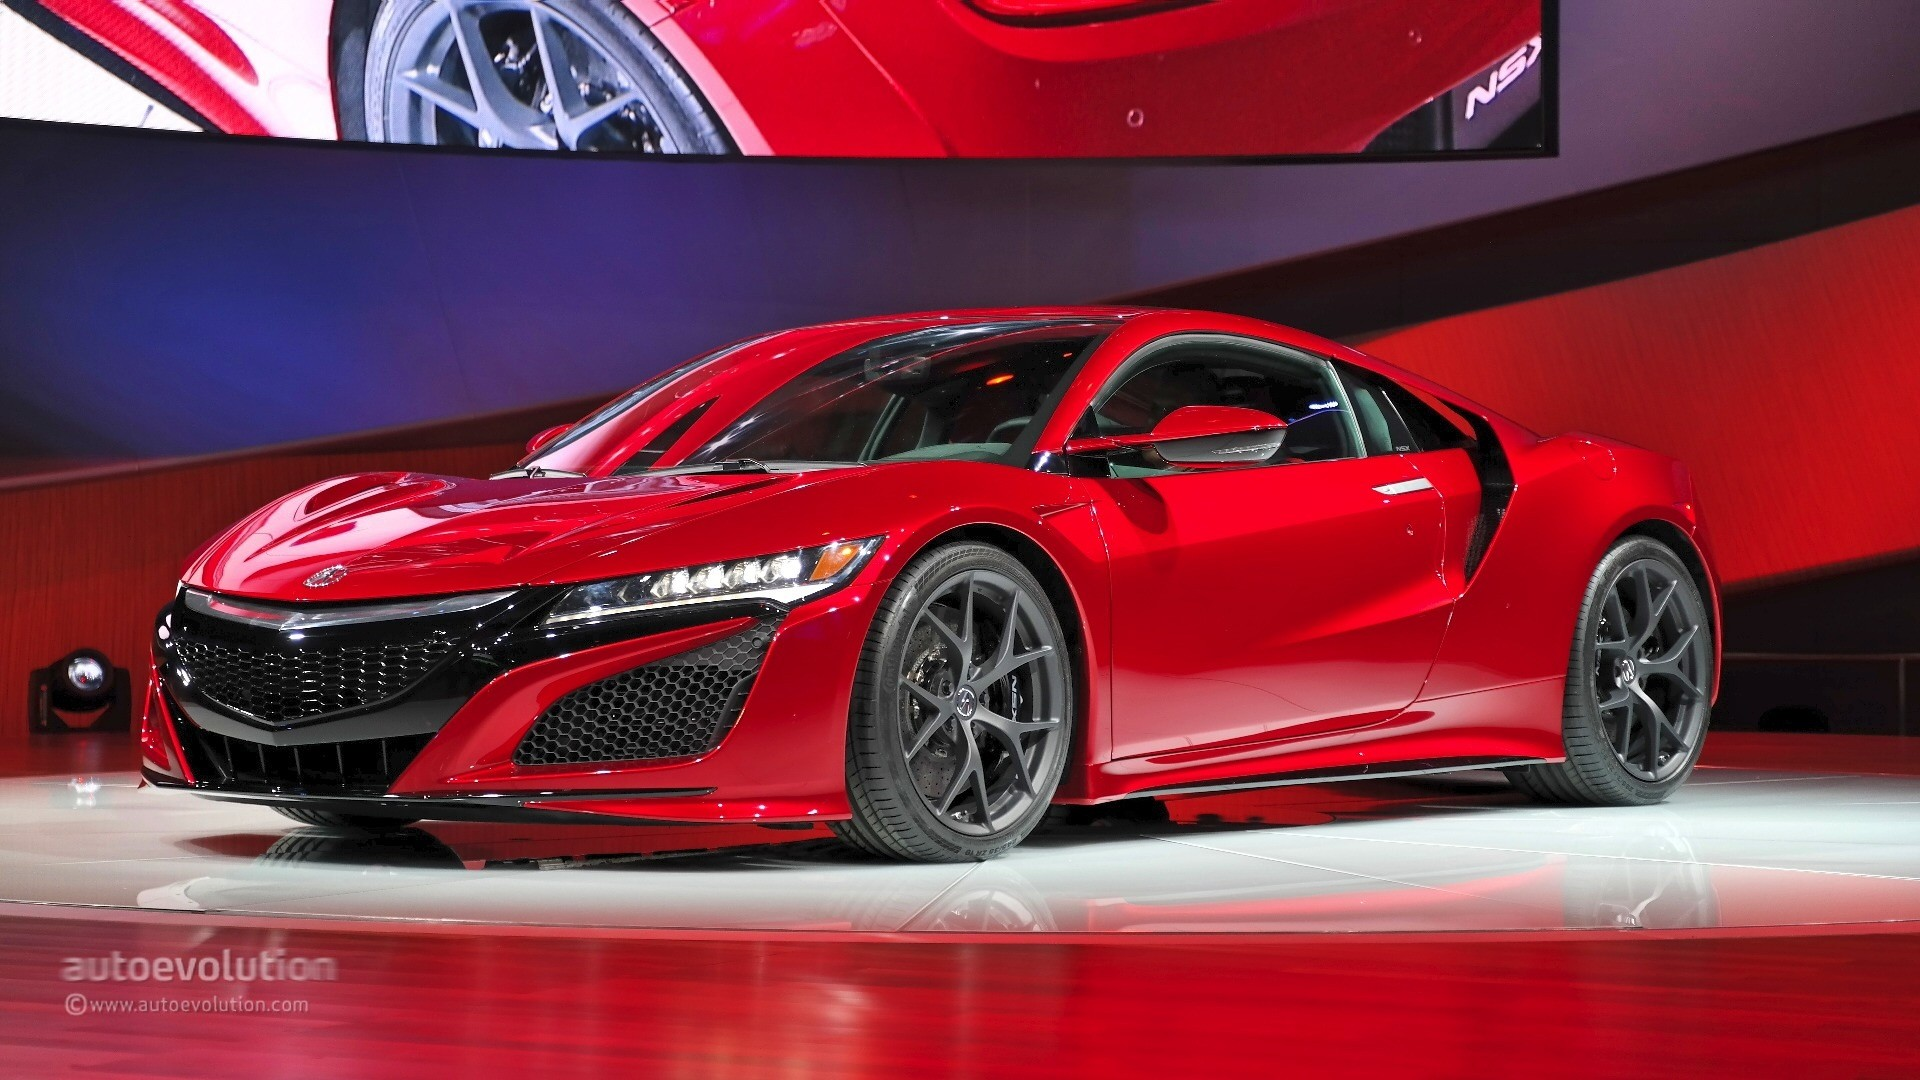 2019 Acura NSX photo - 3